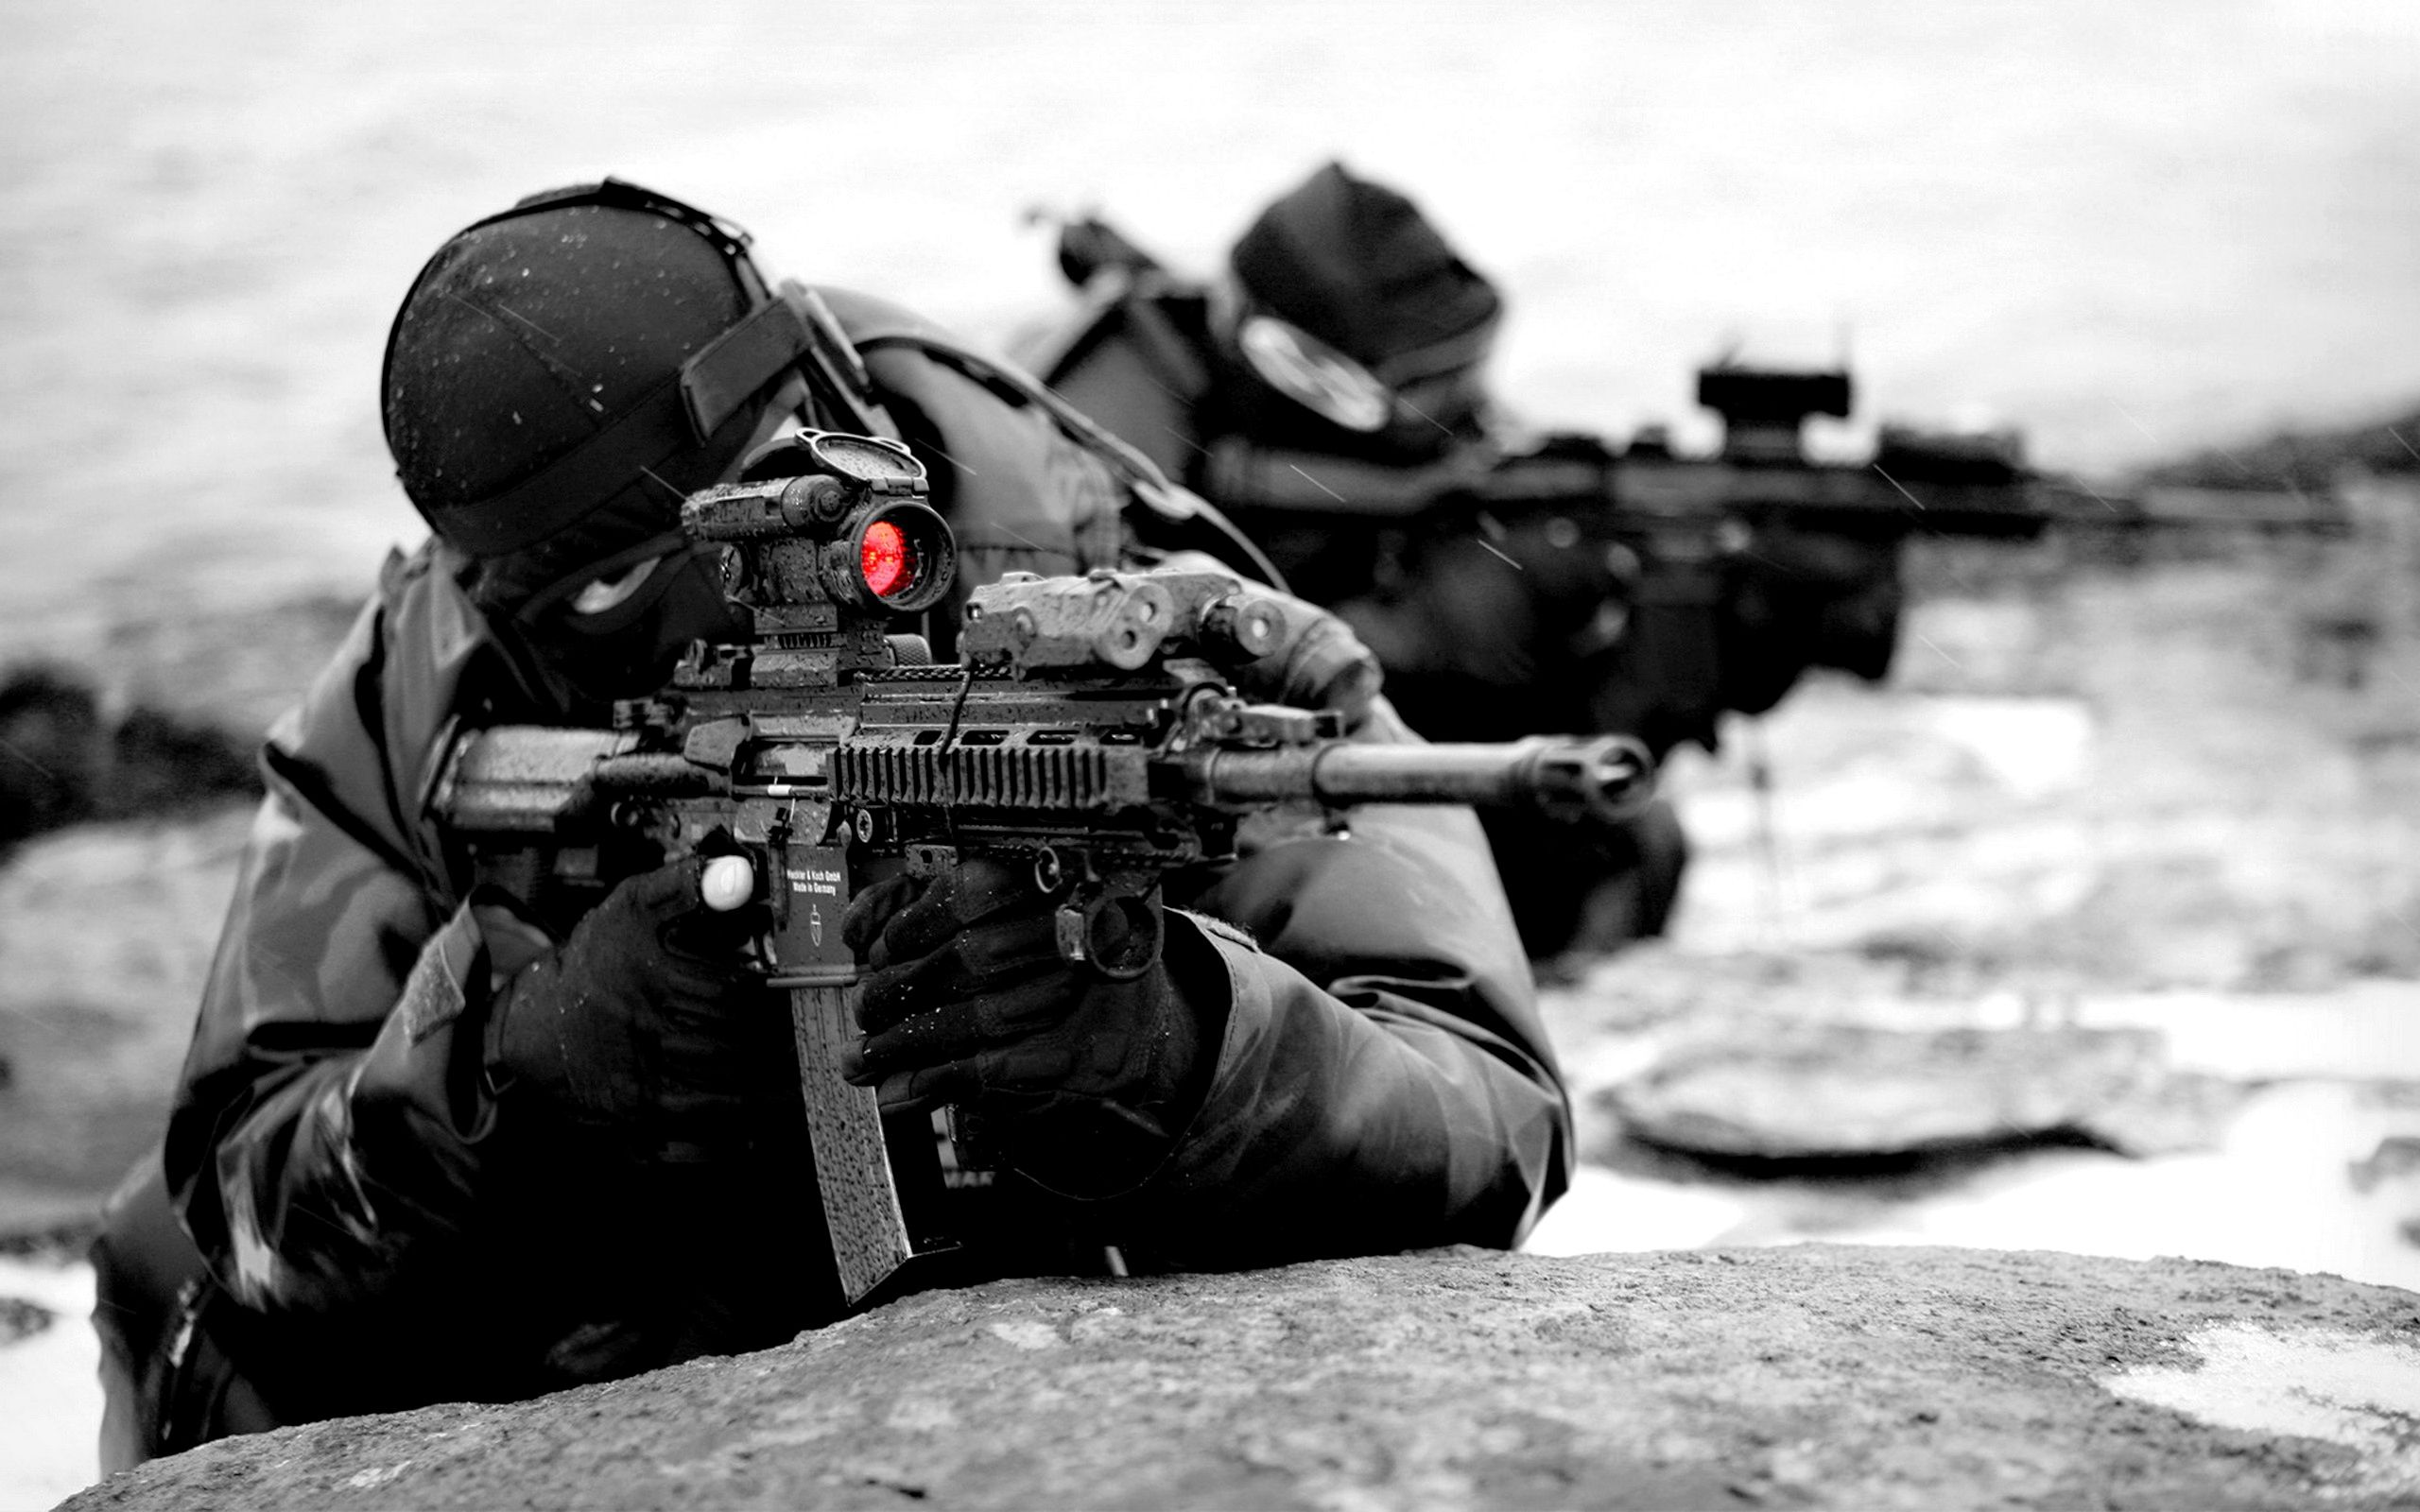 Special Forces Atirador De Elite Wallpaper Militar Fotos Das Forcas Armadas